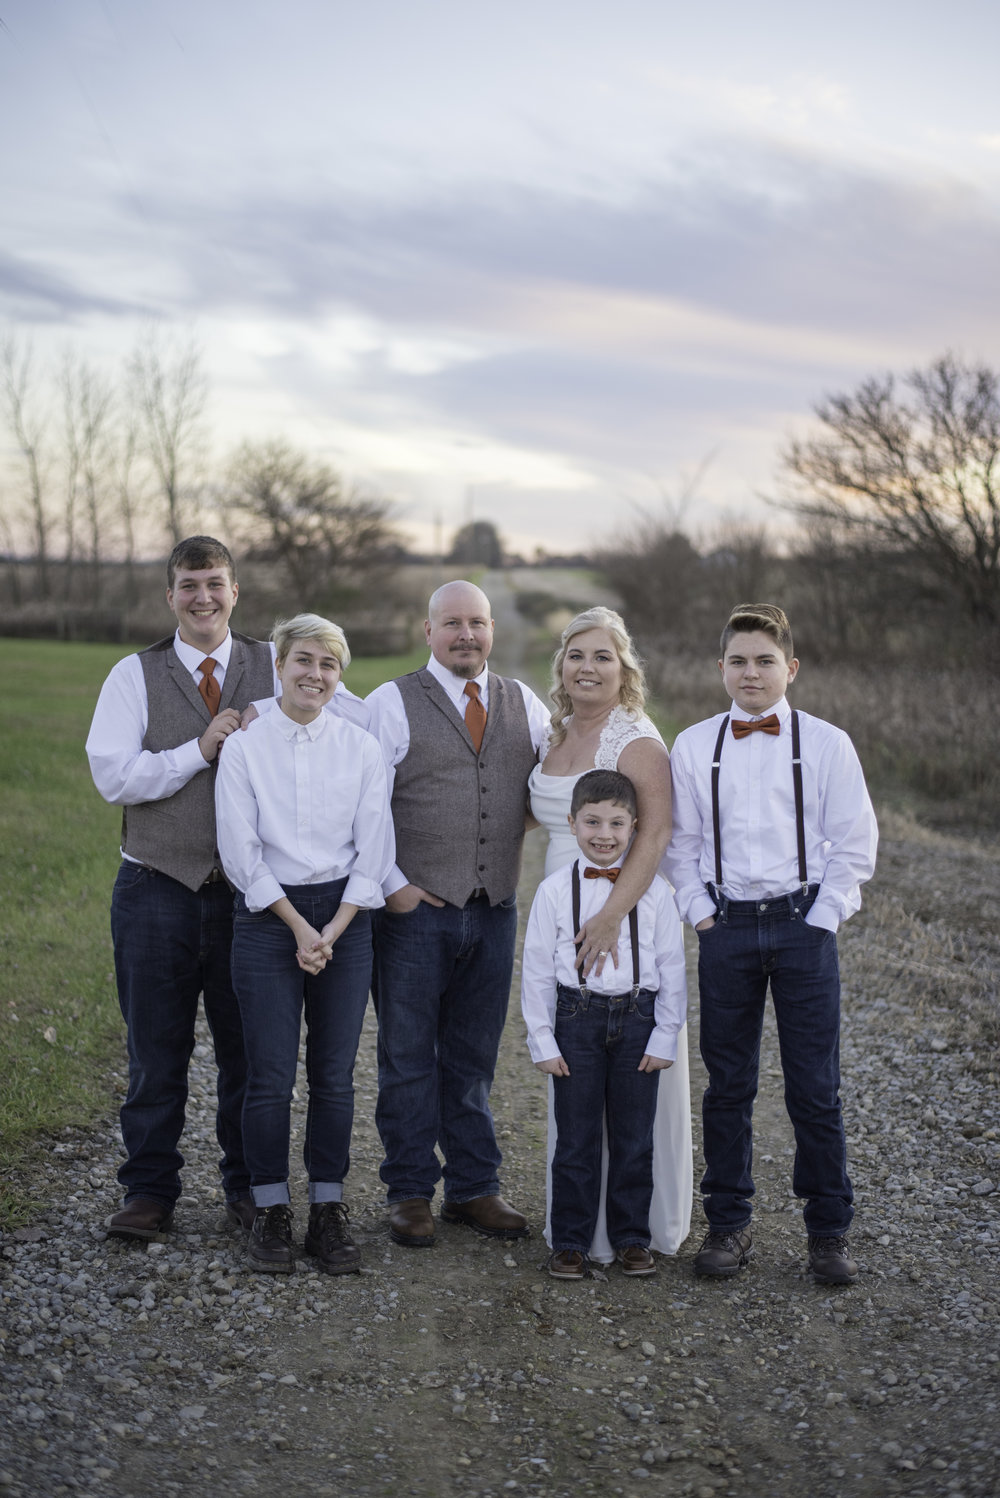 family portrait wedding photographer photography circleville athens lancaster millersport newark hilliard grove city groveport reynoldsburg pickerington